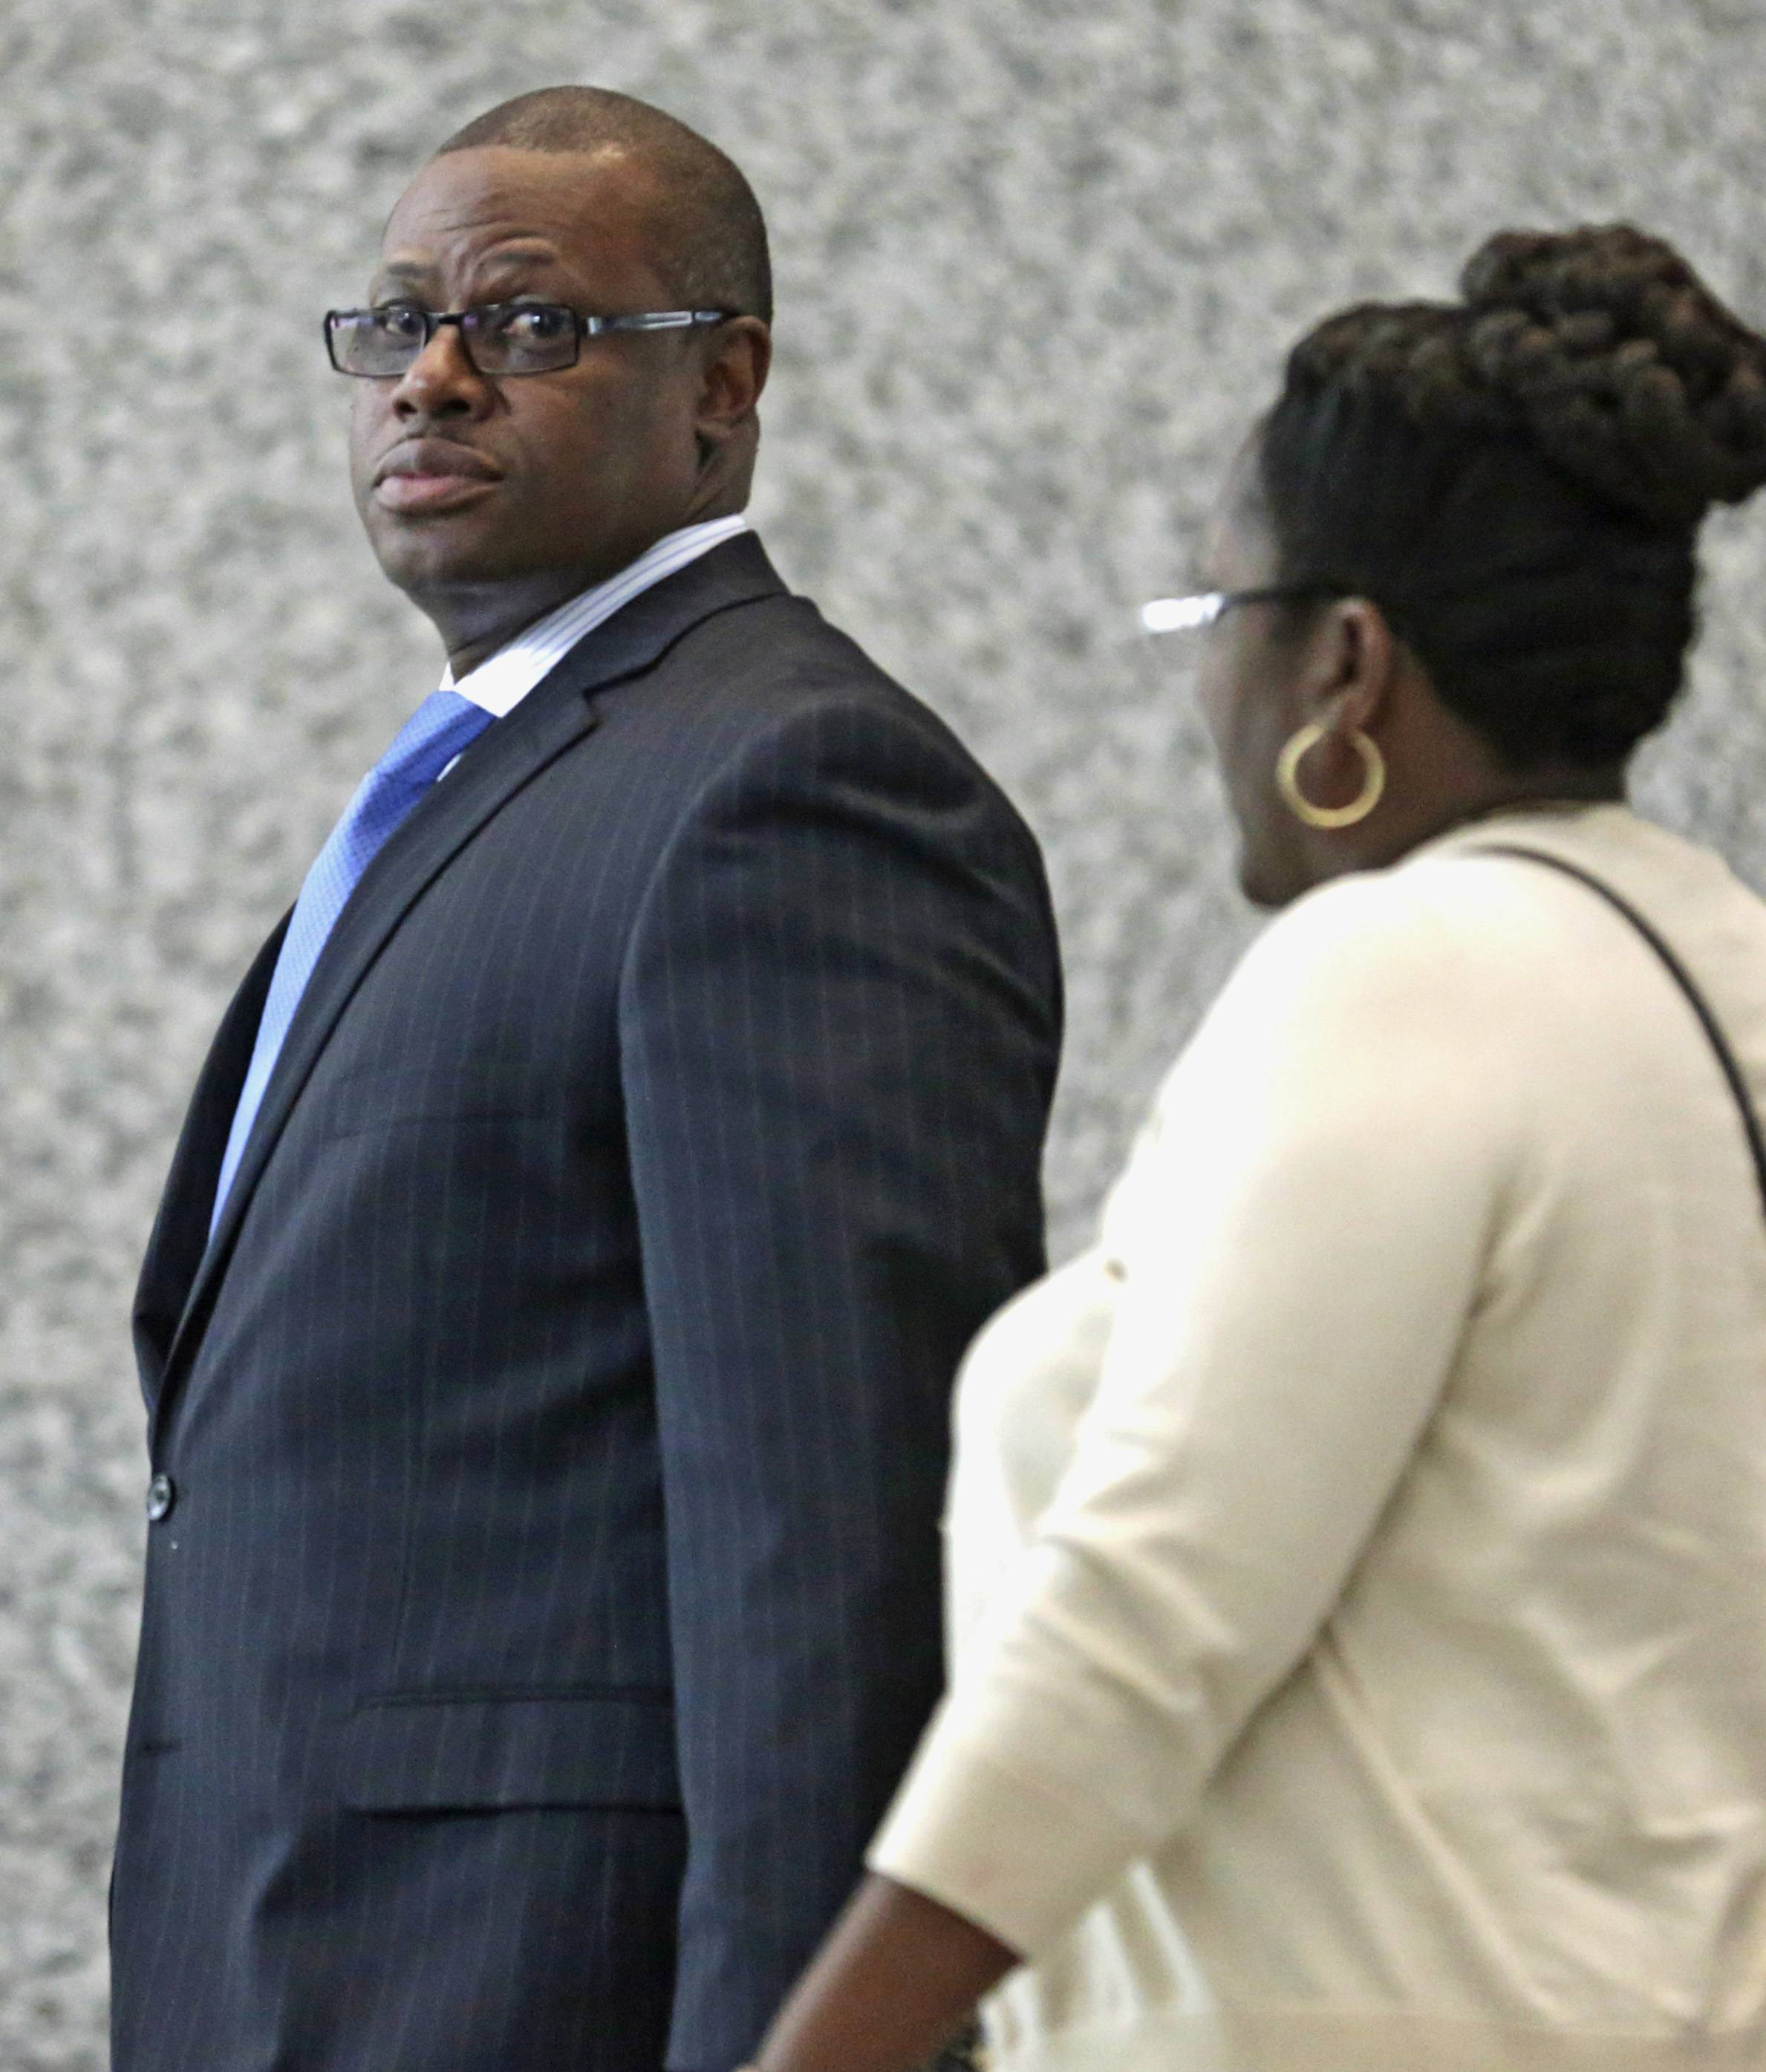 State Rep. Derrick Smith is accused of taking a $7,000 bribe from a day care operator seeking a state grant.